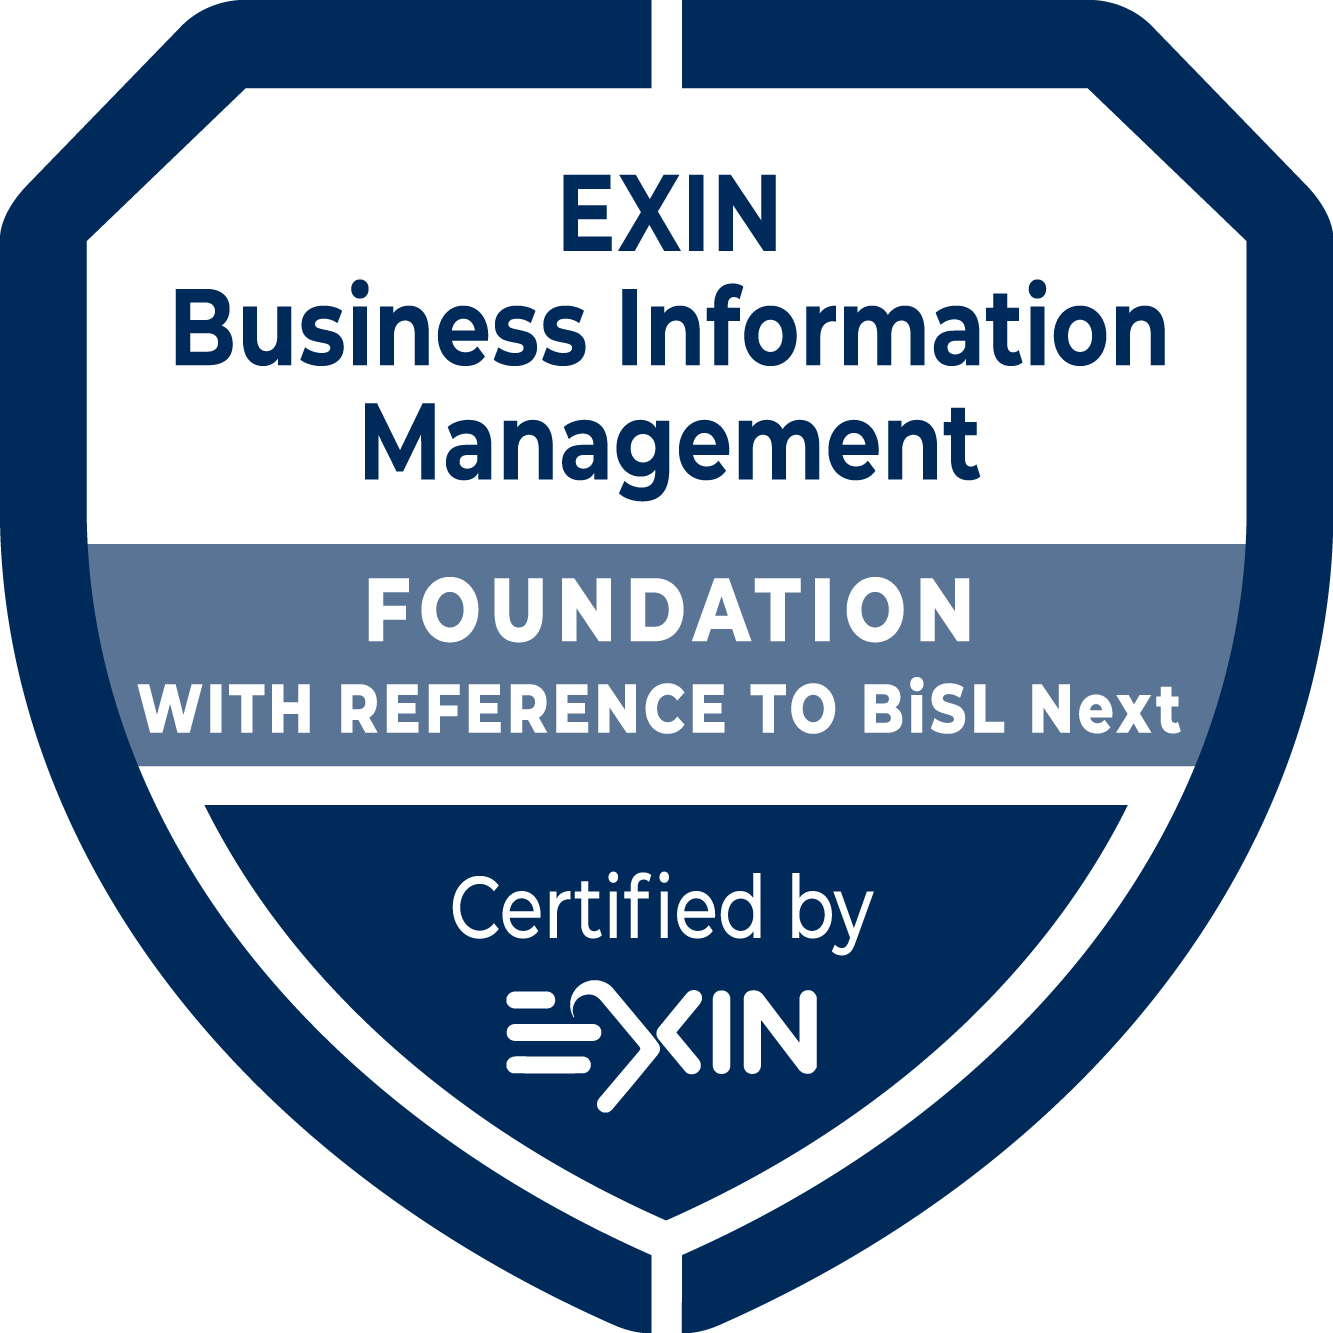 EXIN Business Information Management Foundation with reference to BISL NEXT